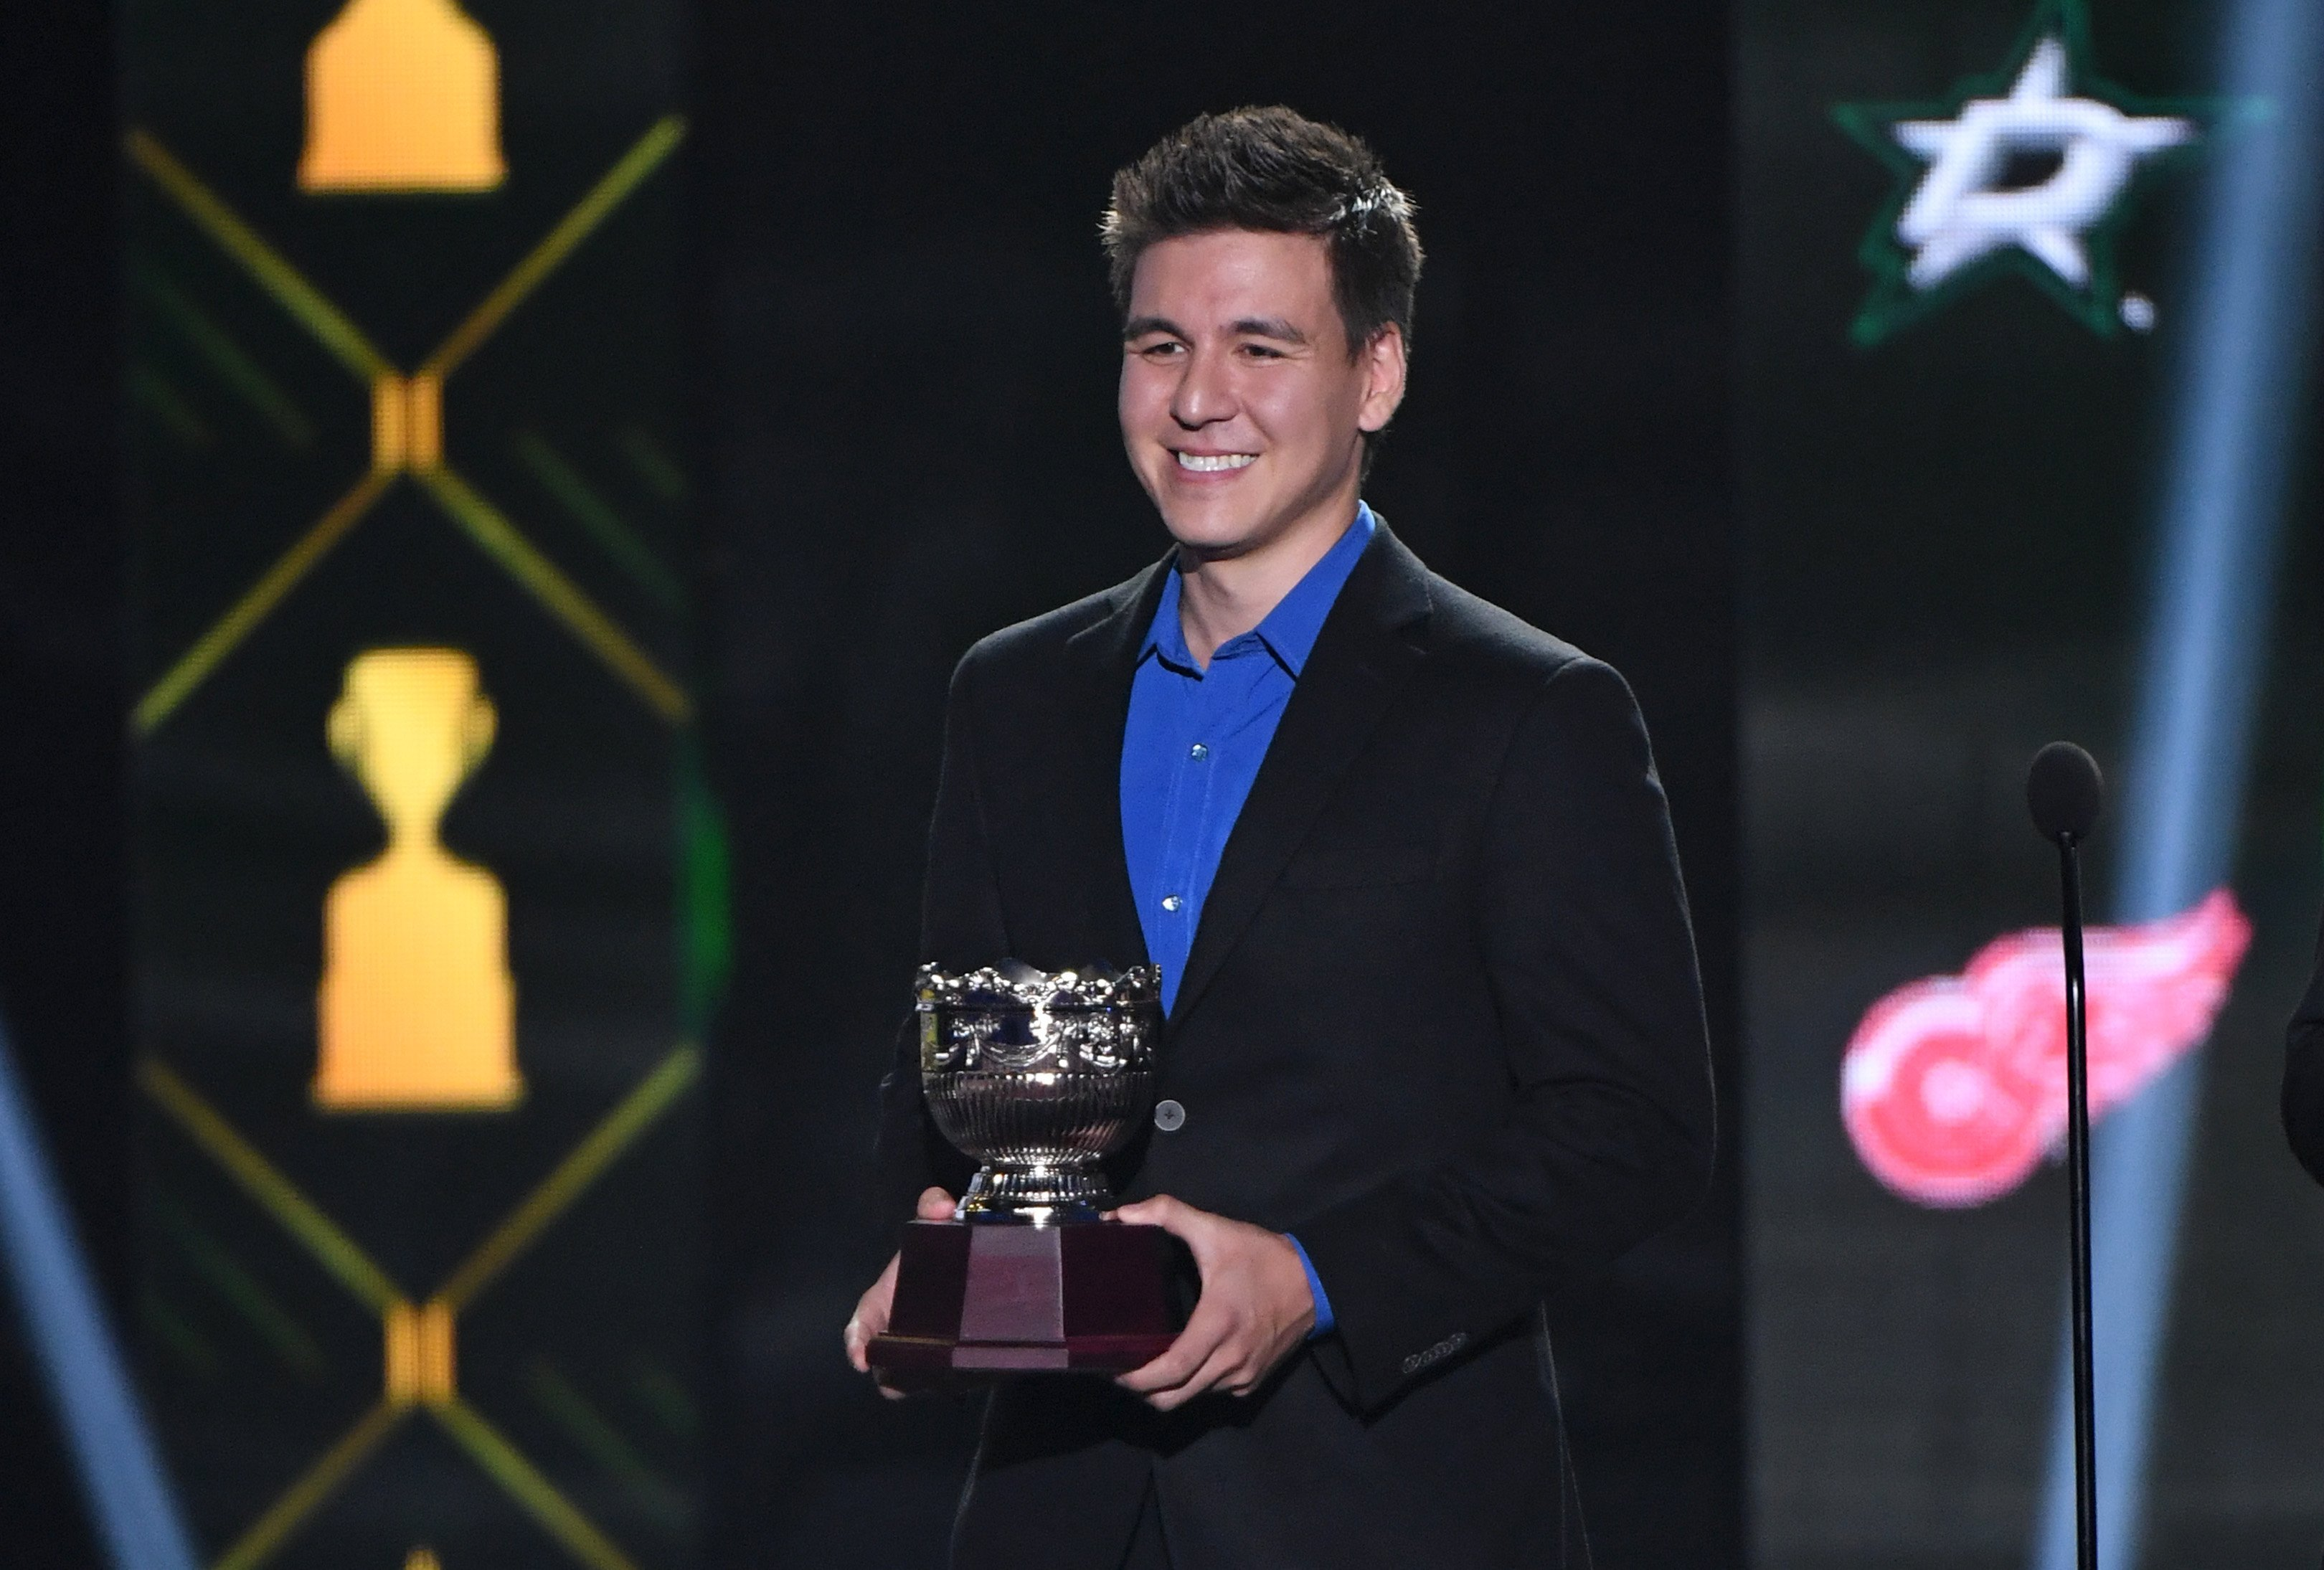 James Holzhauer presents the Frank J. Selke Trophy during the 2019 NHL Awards at the Mandalay Bay Events Center on June 19, 2019 in Las Vegas, Nevada | Photo: Getty Images